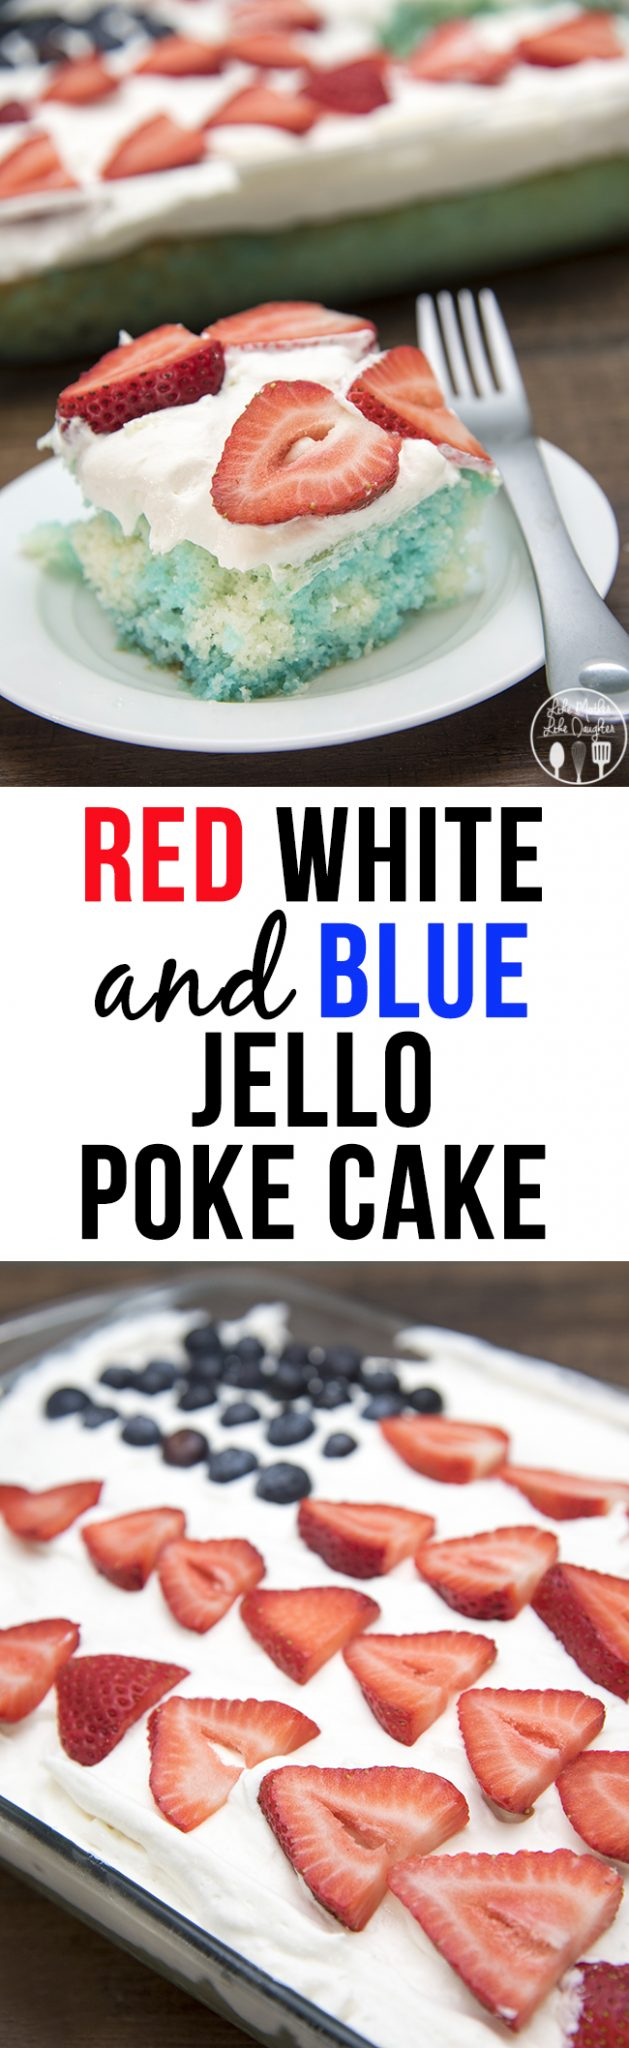 Red White and Blue Jello Poke Cake - This simple to make poke cake starts with a boxed cake mix, jello, and coolwhip. Its the perfect cake for the fourth of july because its easy to make, delicious and red white and blue!